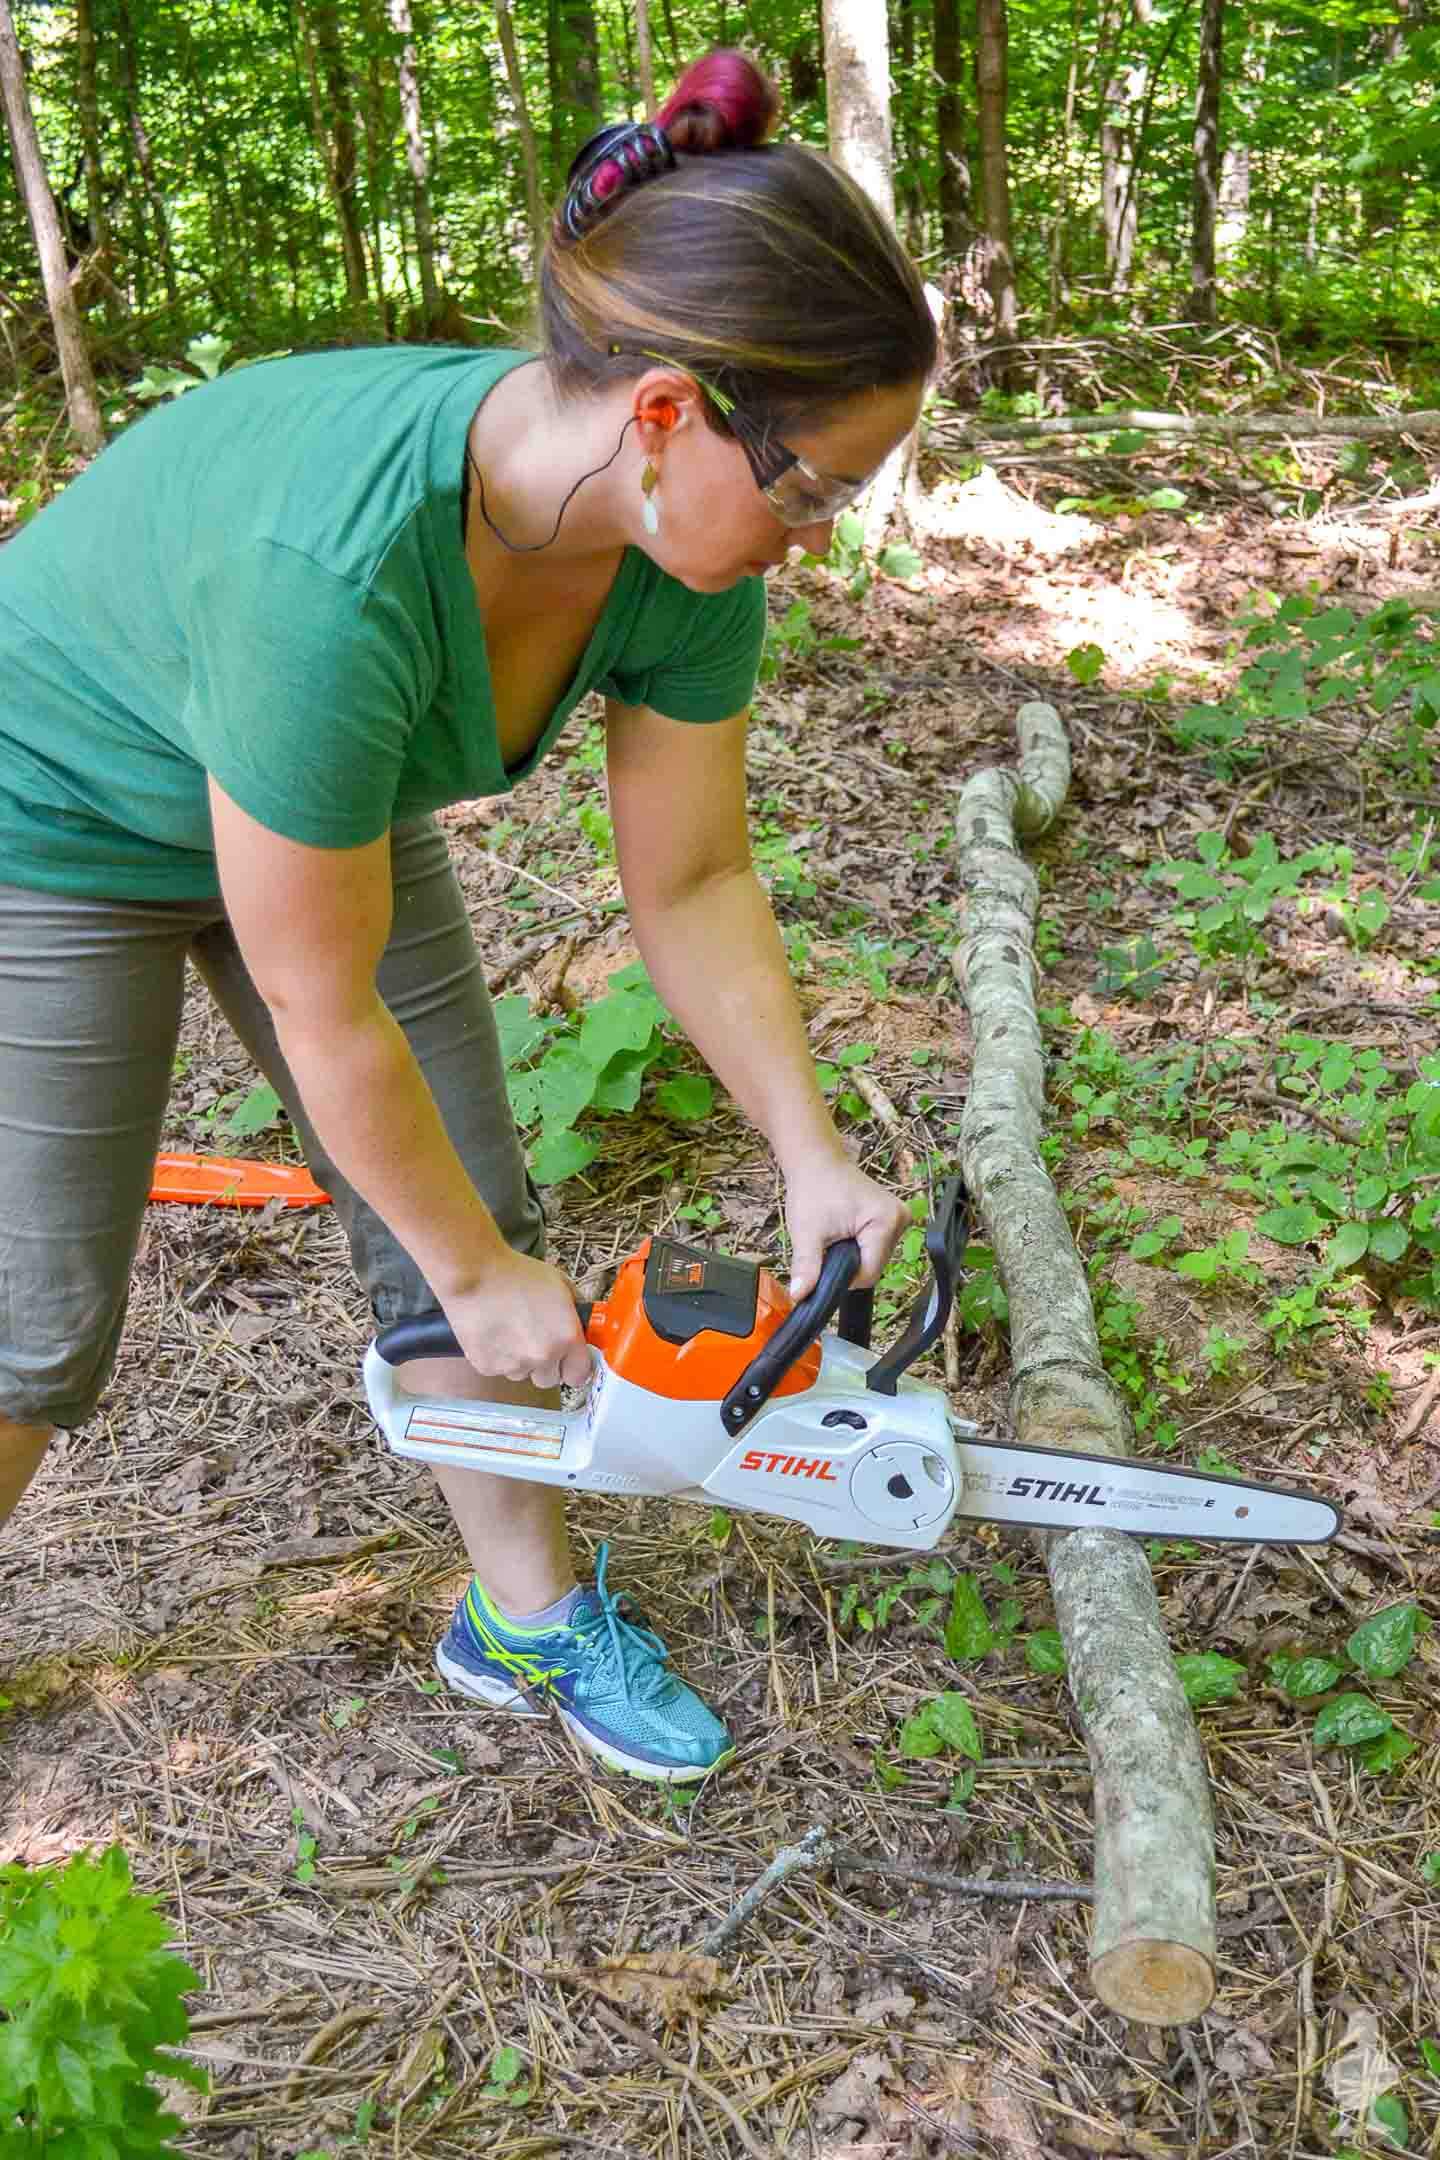 Line assembly of me cutting multiple lengths with chainsaw